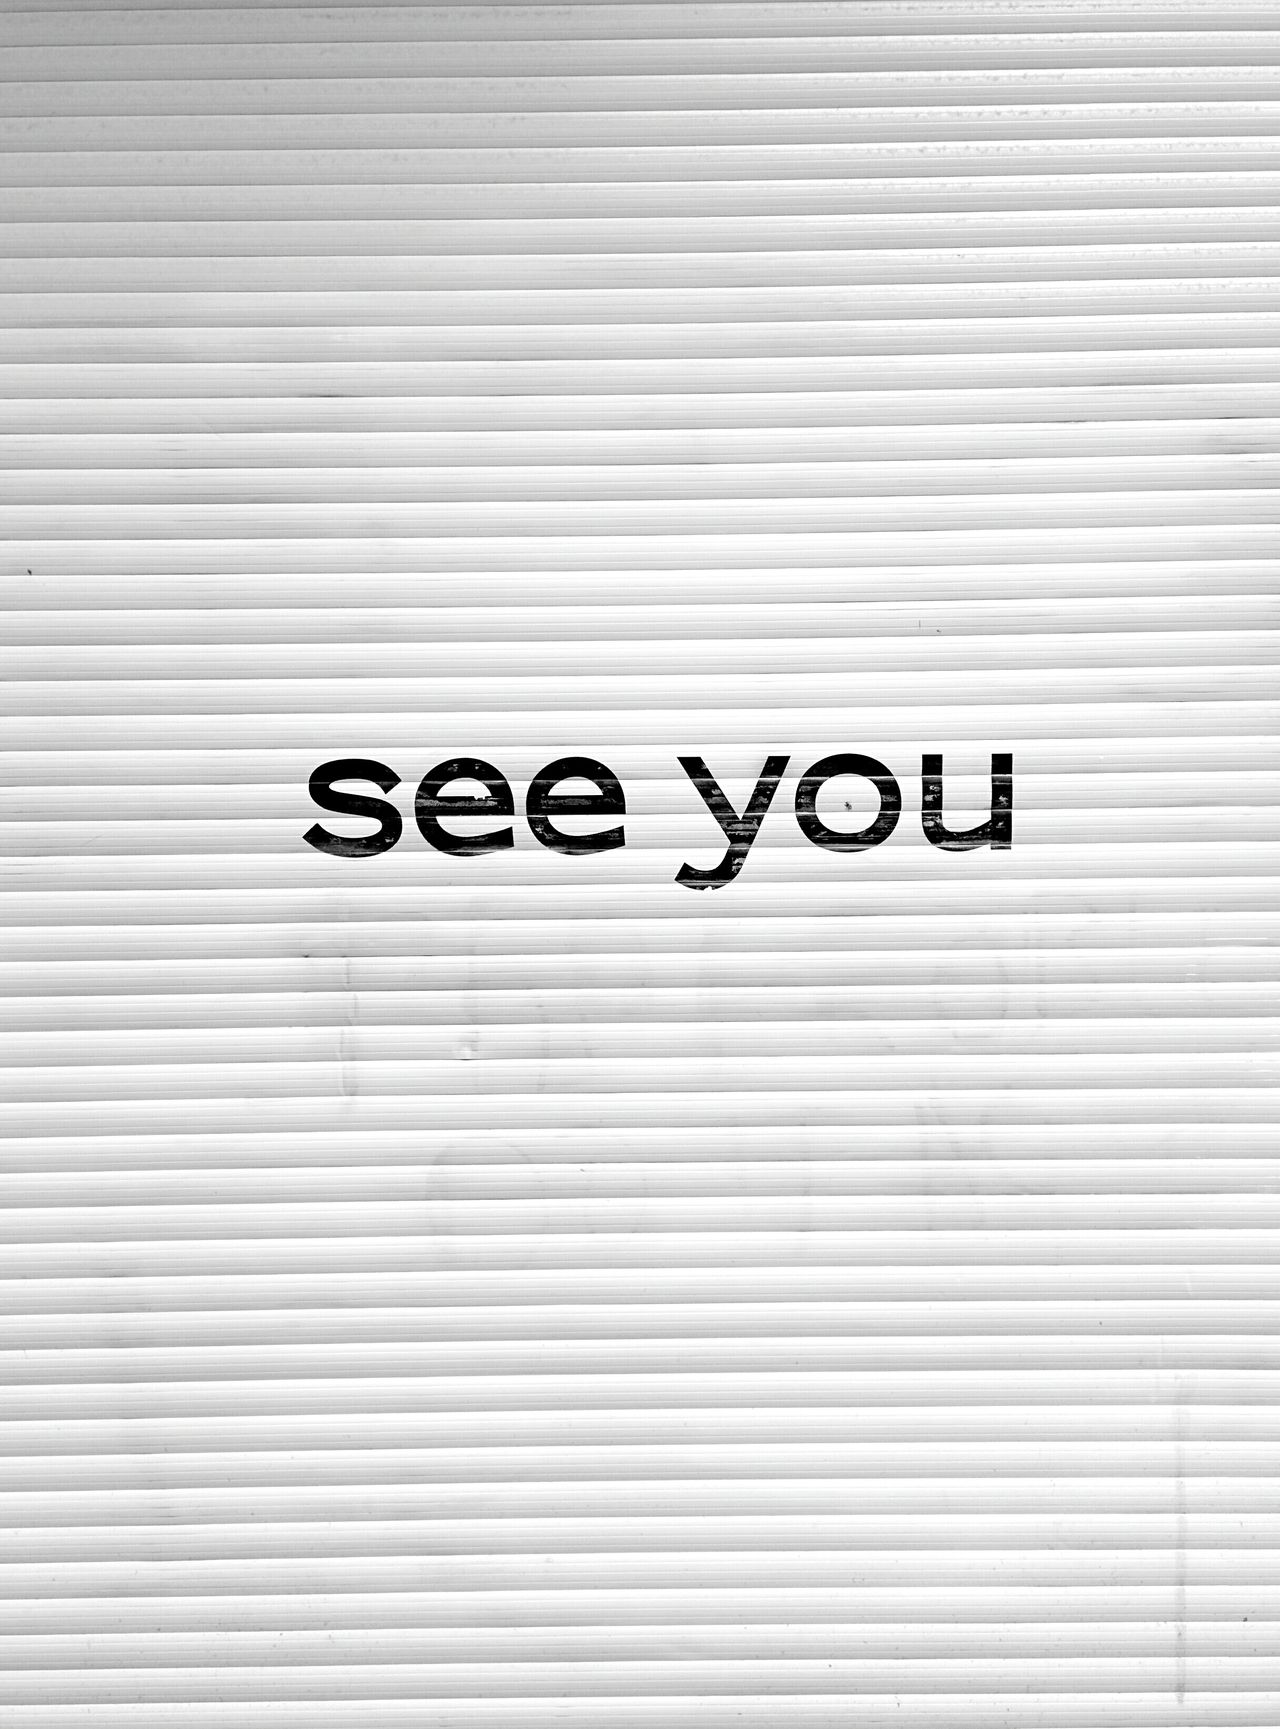 Day 359 - See you Berlin Blackandwhite Streetphotography Streetphoto_bw Momochrome Photography Streetart 365florianmski 365project Day359